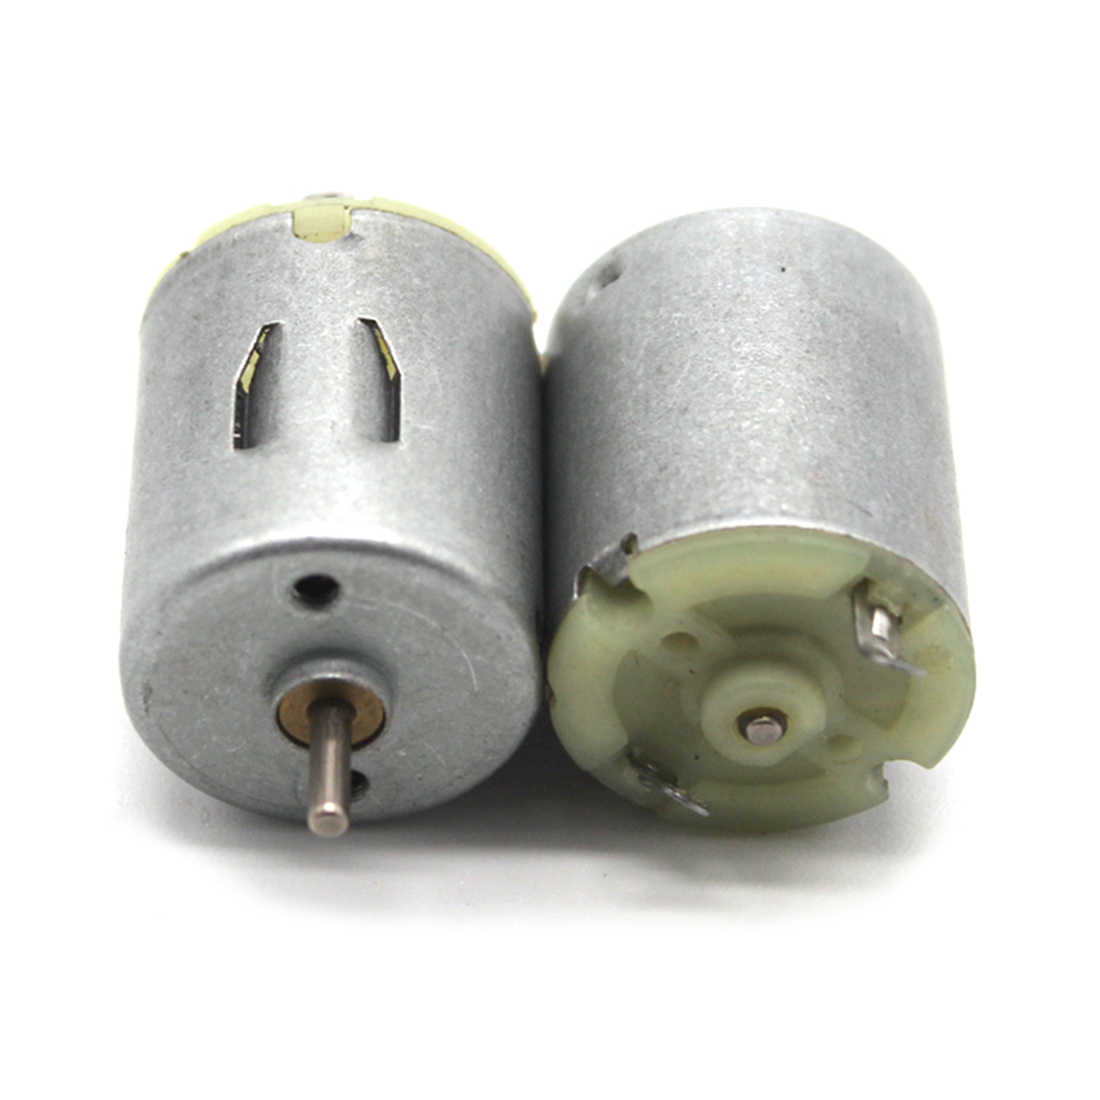 2pcs DC3V 17000RPM Mini 1025 Cylindrical motor Micro High speed Motor for HM DIY